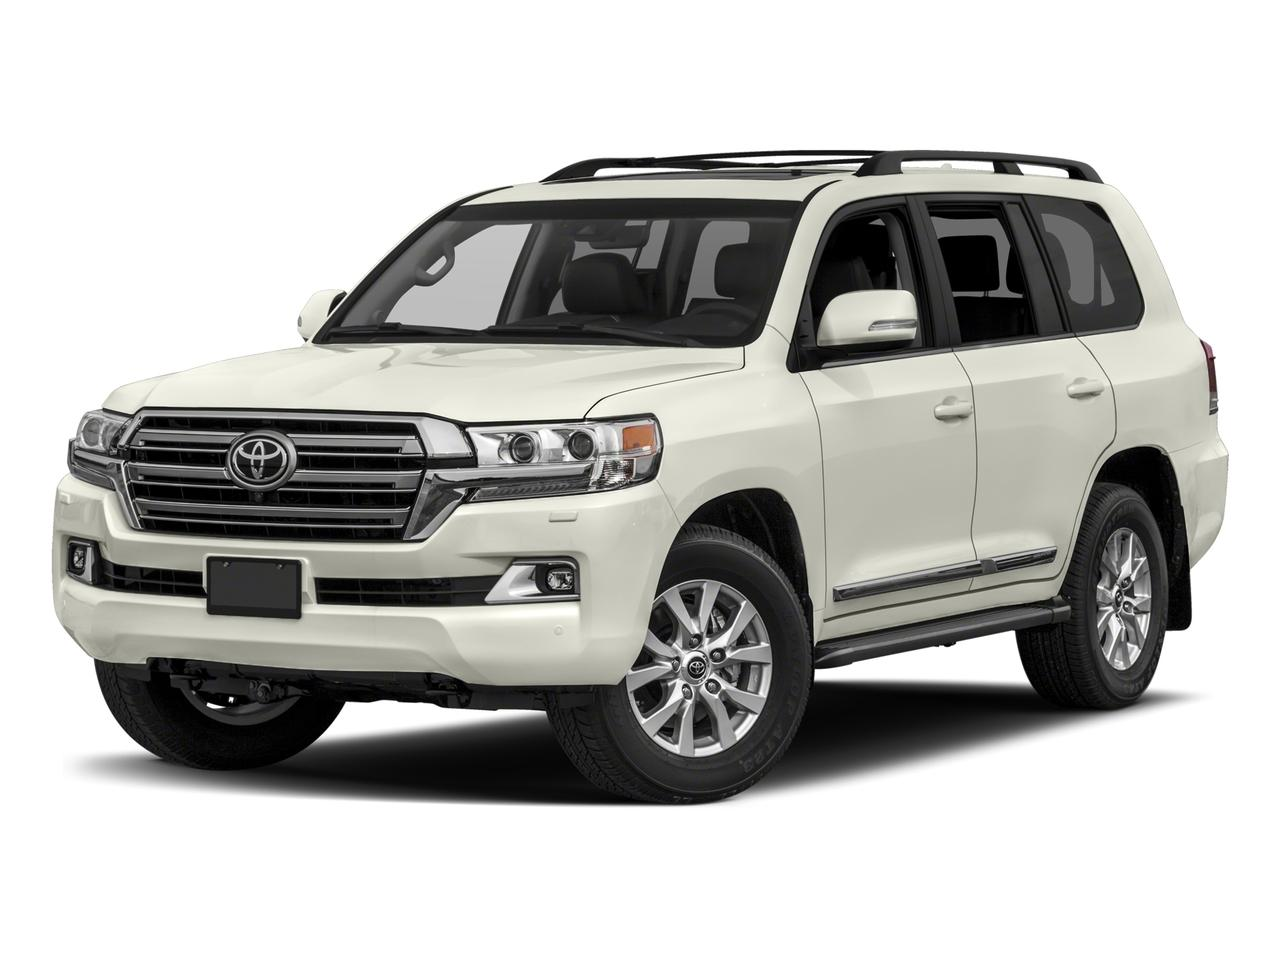 2018 Toyota Land Cruiser Vehicle Photo in Novato, CA 94945